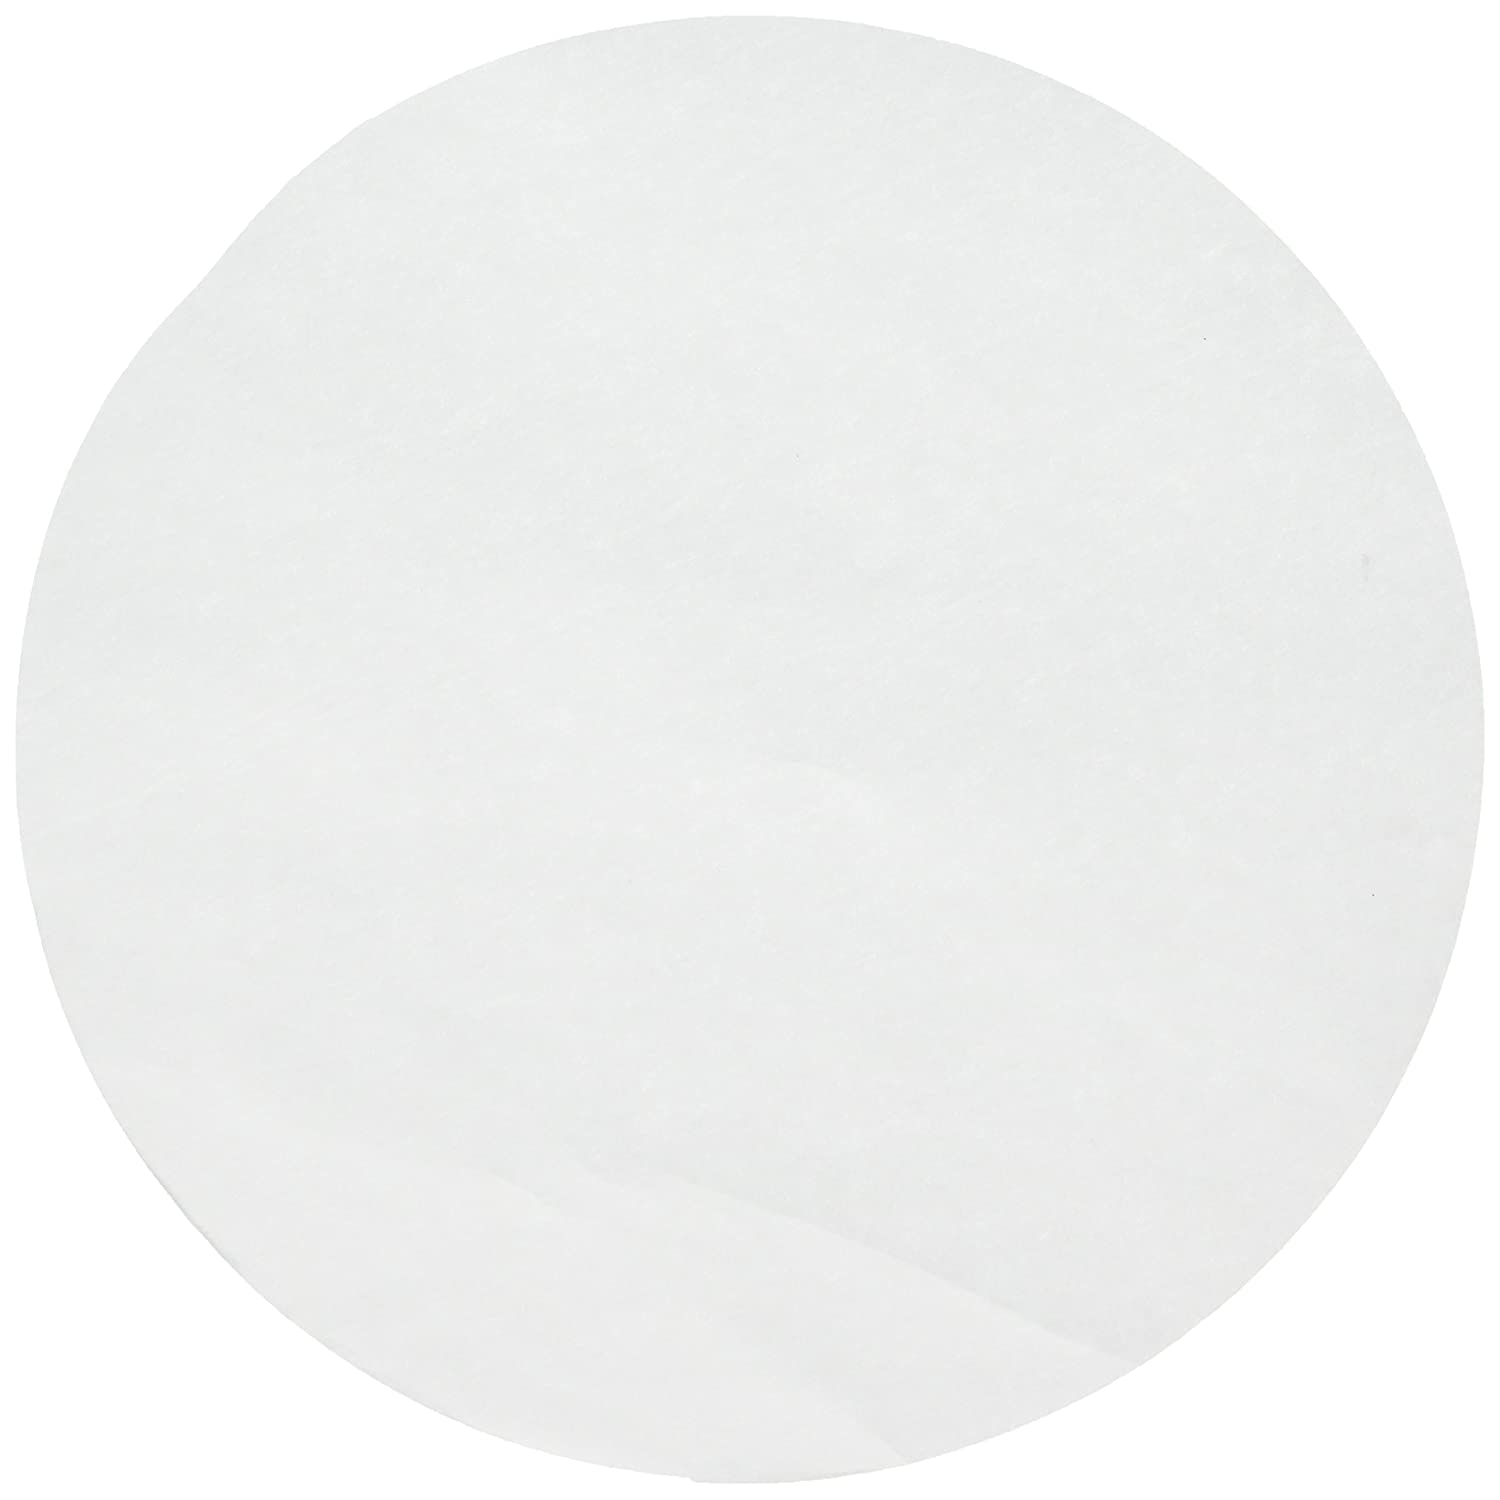 Green Direct Best Quality 8 Inch Diameter Parchment Paper Circles Pack of 50, The Item You Must Have for All Your Cooking and Baking Chores GD-PP825